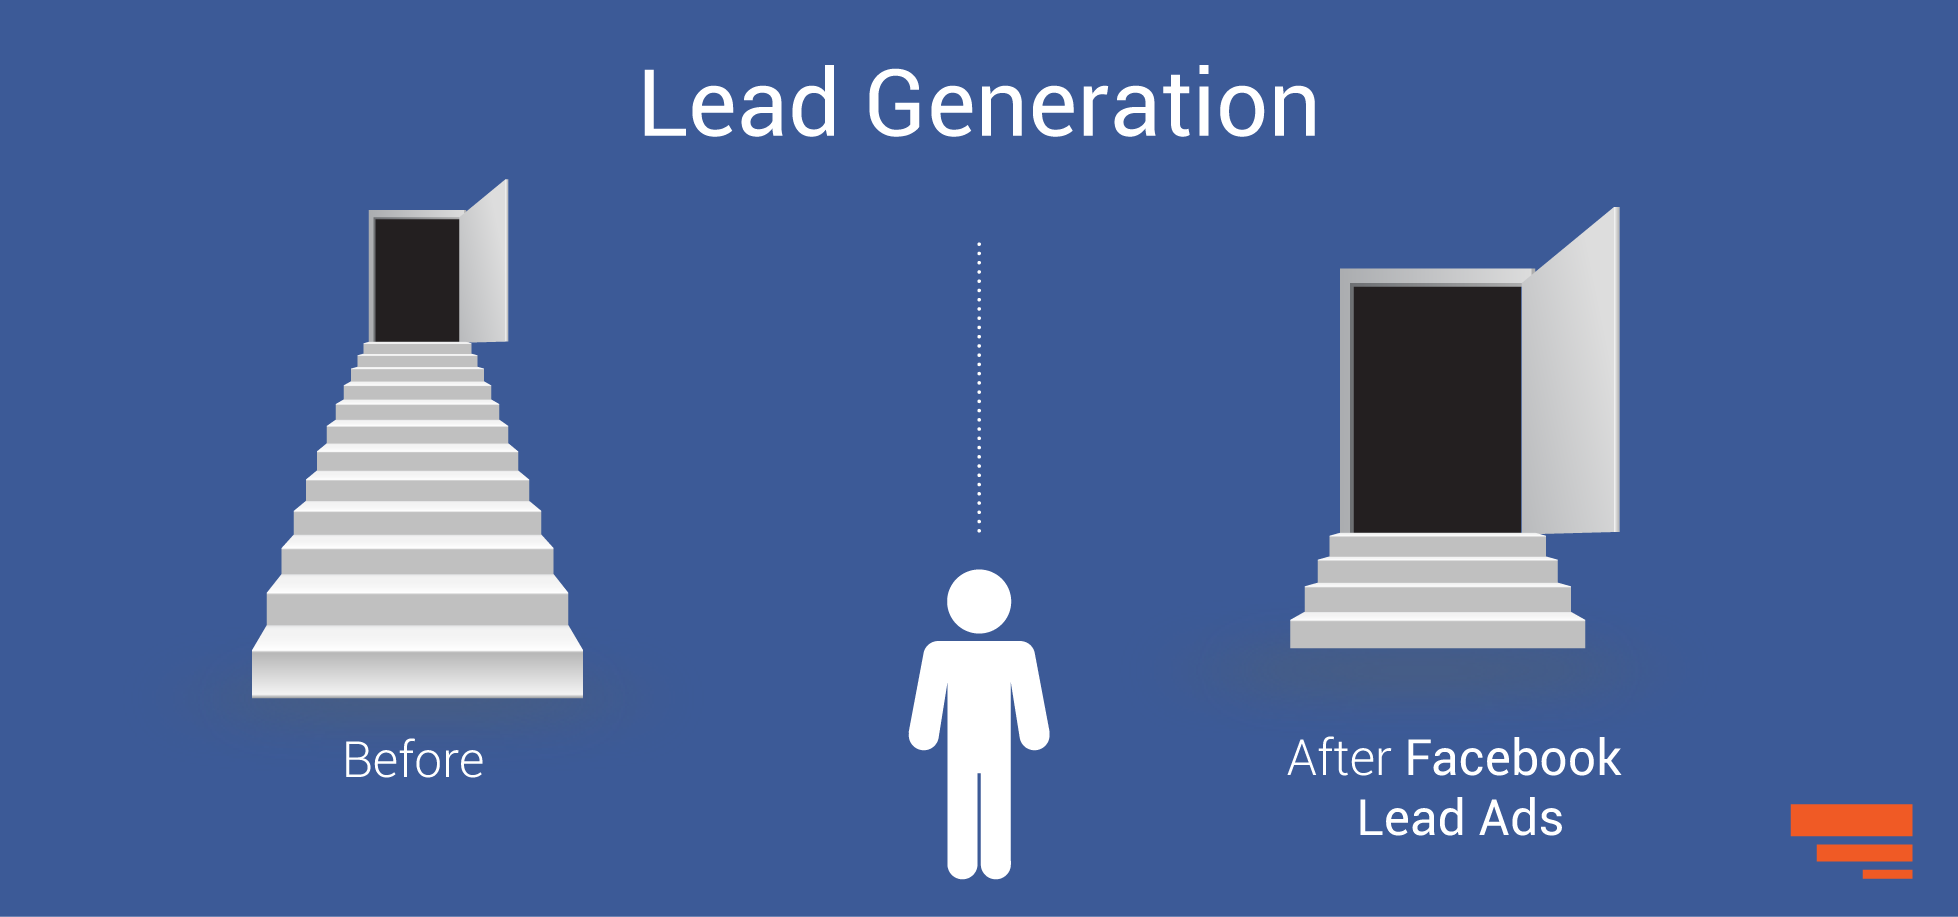 Facebook Lead Ads for lead generation, look no further